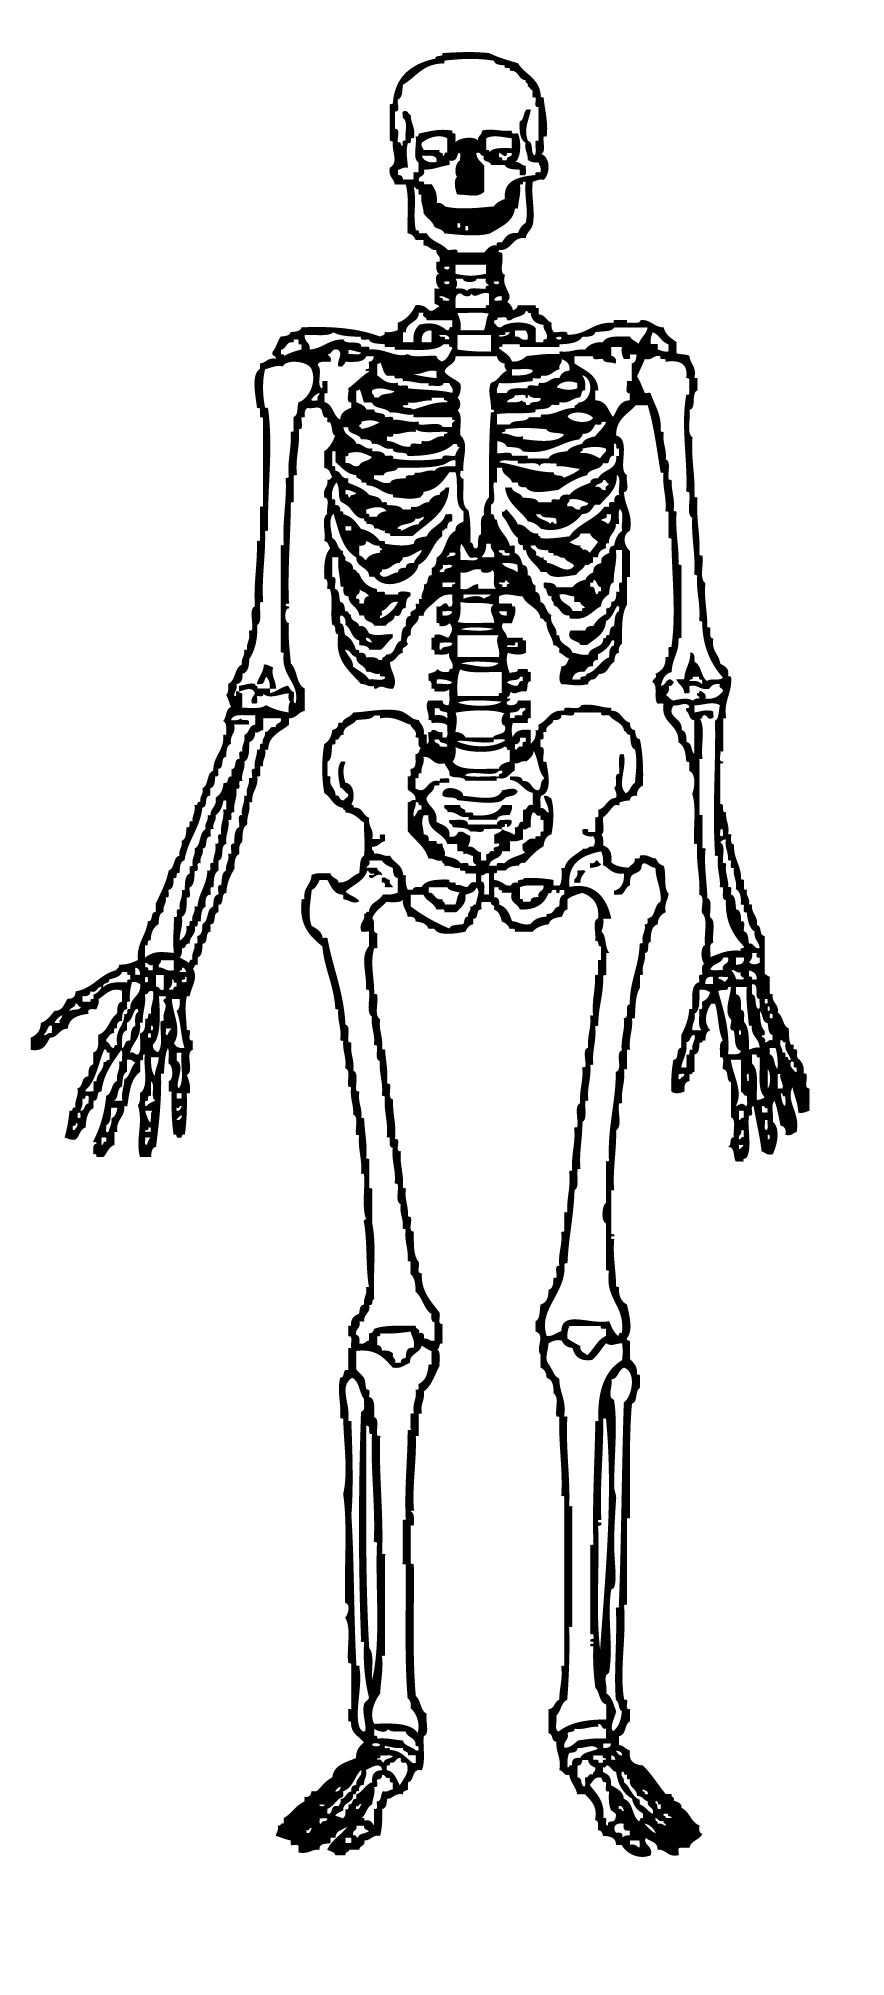 Human Skeleton Clipart Free Cliparts Clipart Best Human Skeleton Coloring Pages